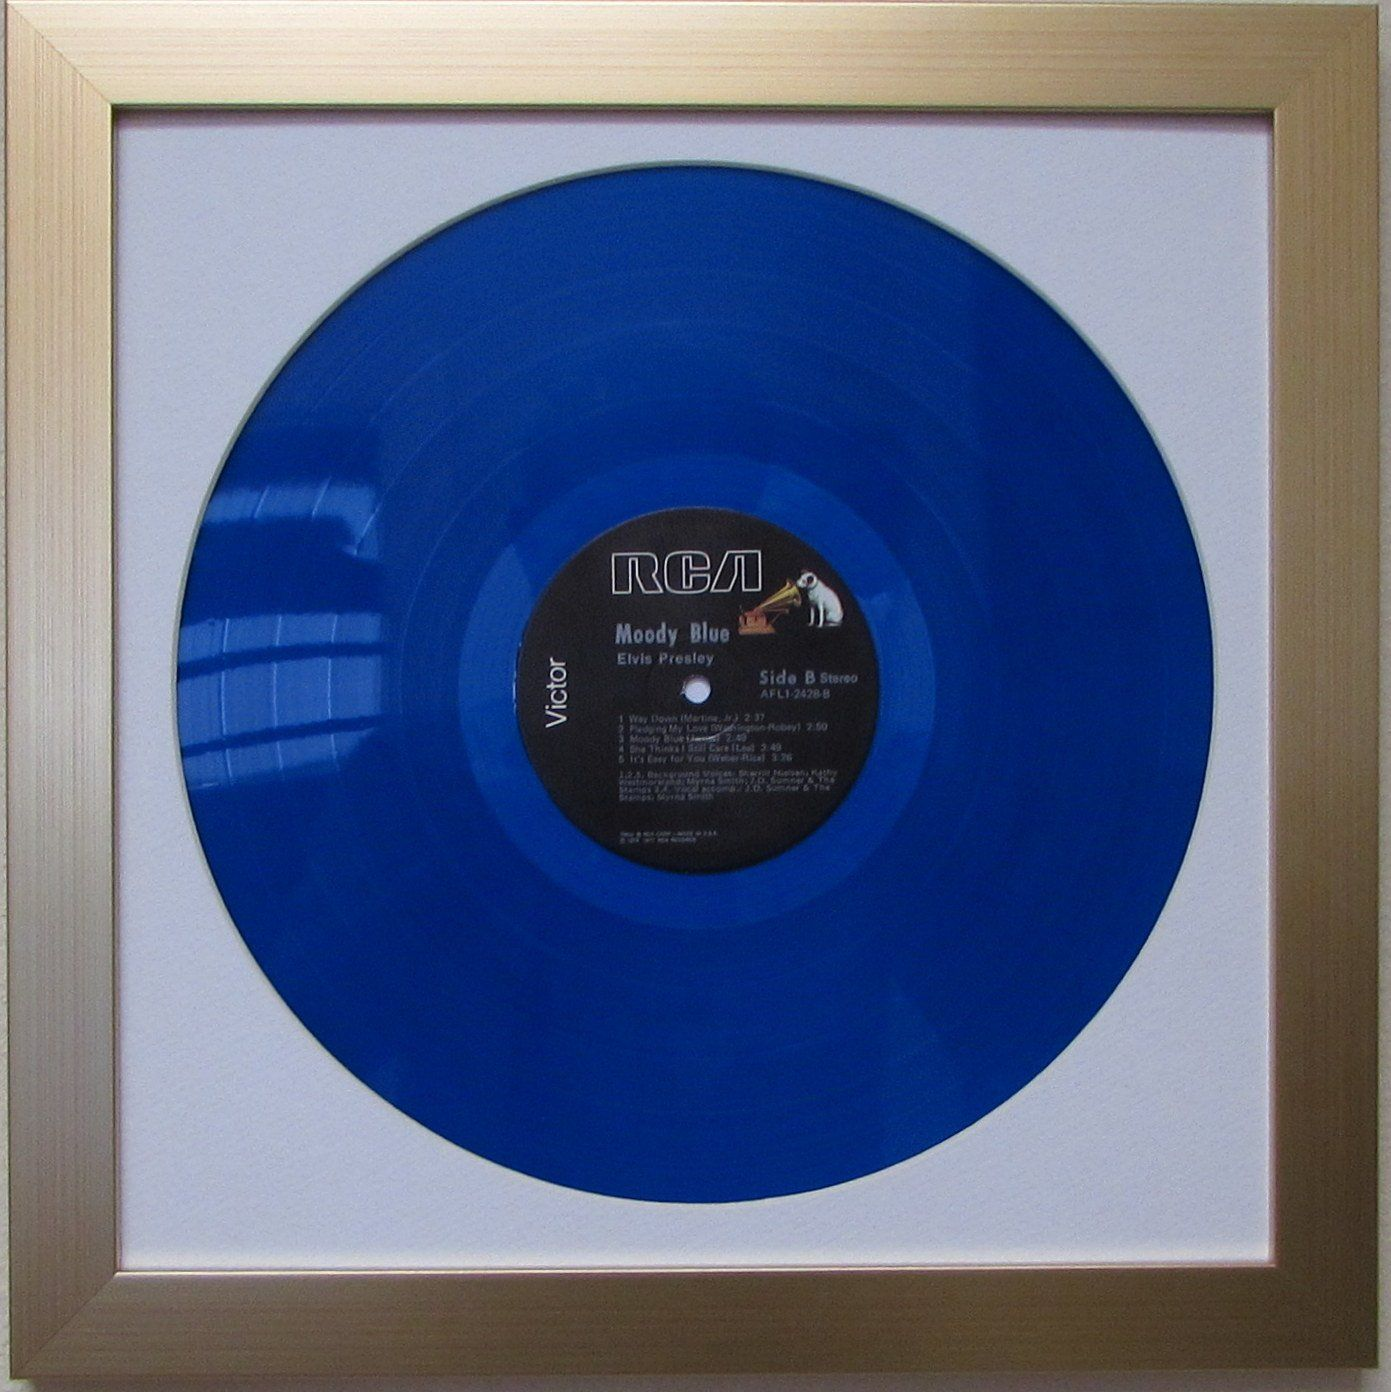 Picture Disc 12 Lp Vinyl Record Frame Display White Matting Brushed Gold Frame Check Out The Image By V Framed Records Vinyl Record Frame Frame Display